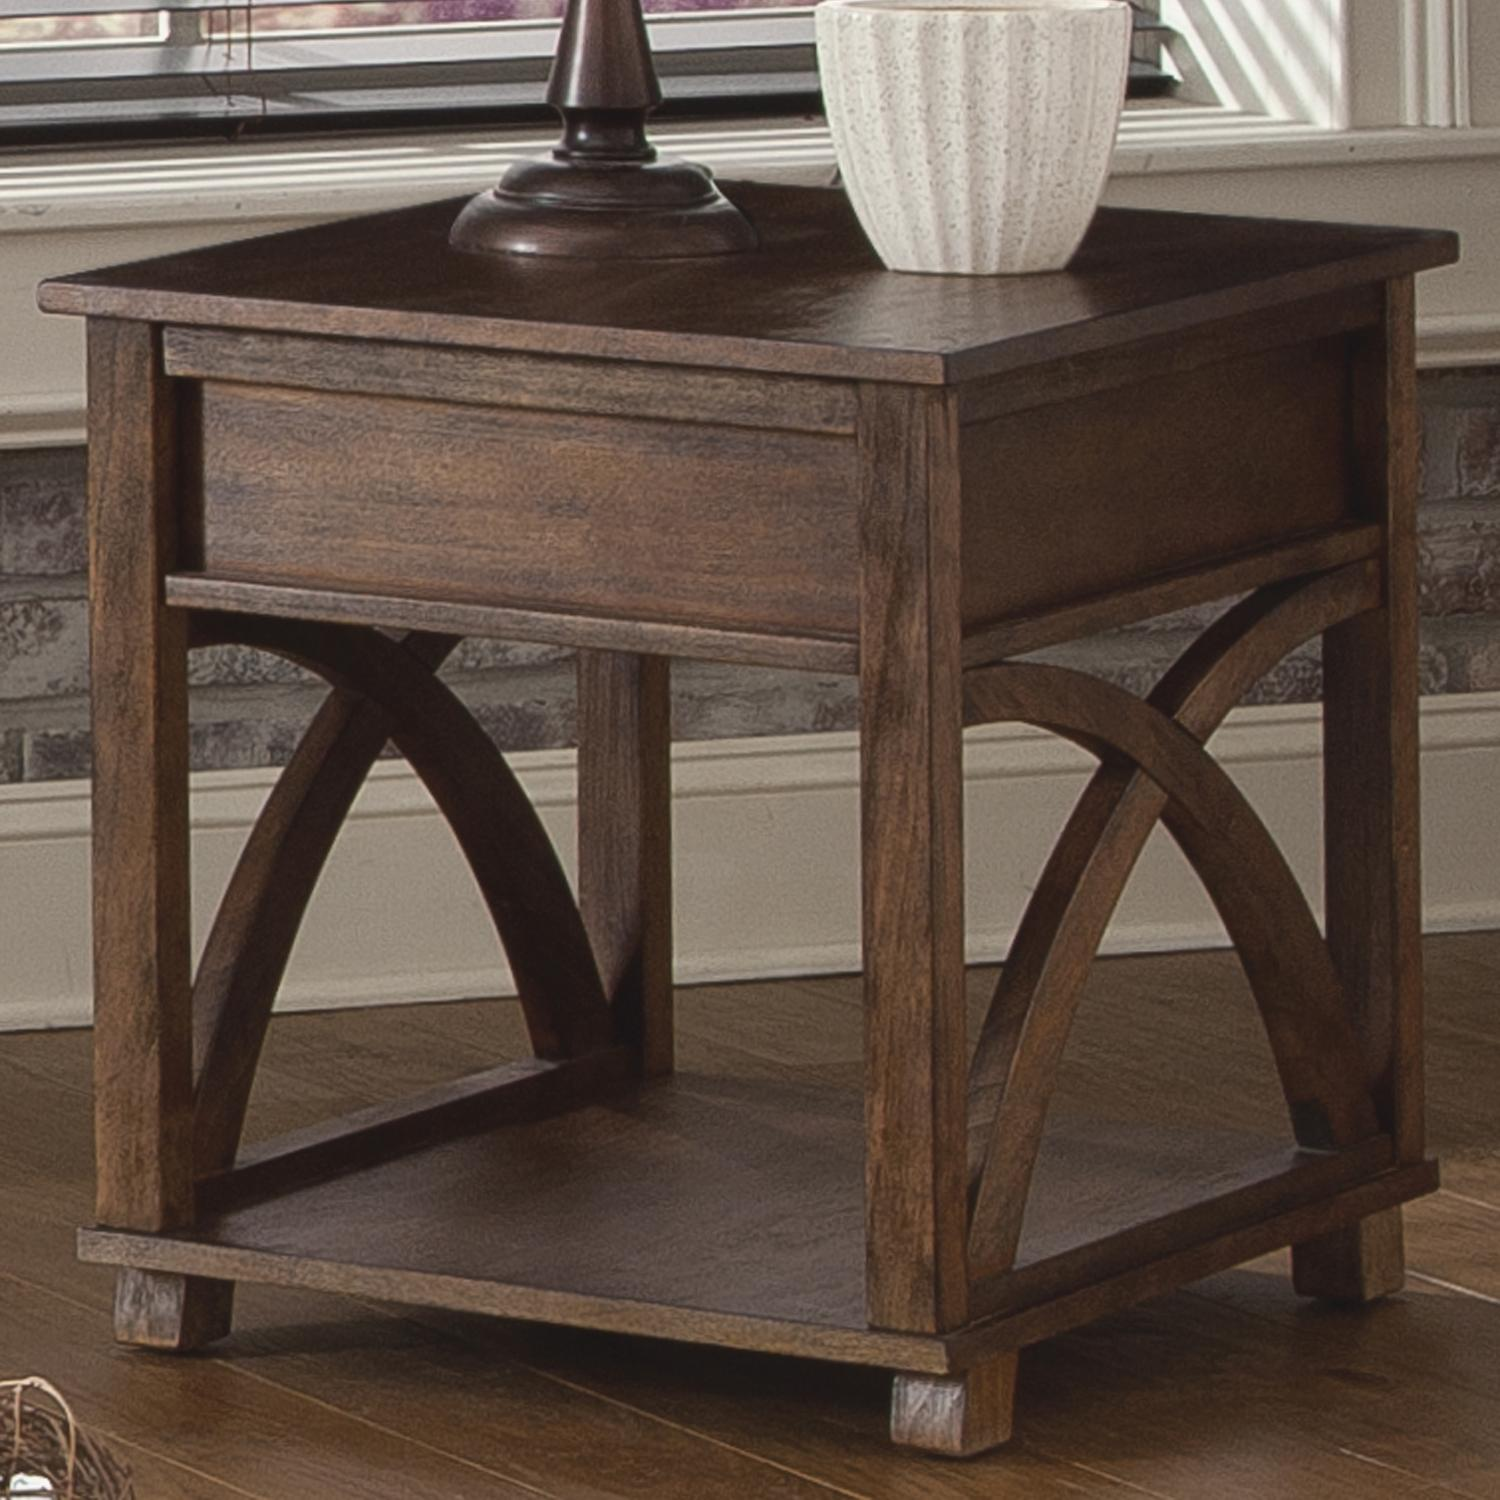 Liberty Furniture Chesapeake Bay Rectangle End Table - Item Number: 335-OT1020